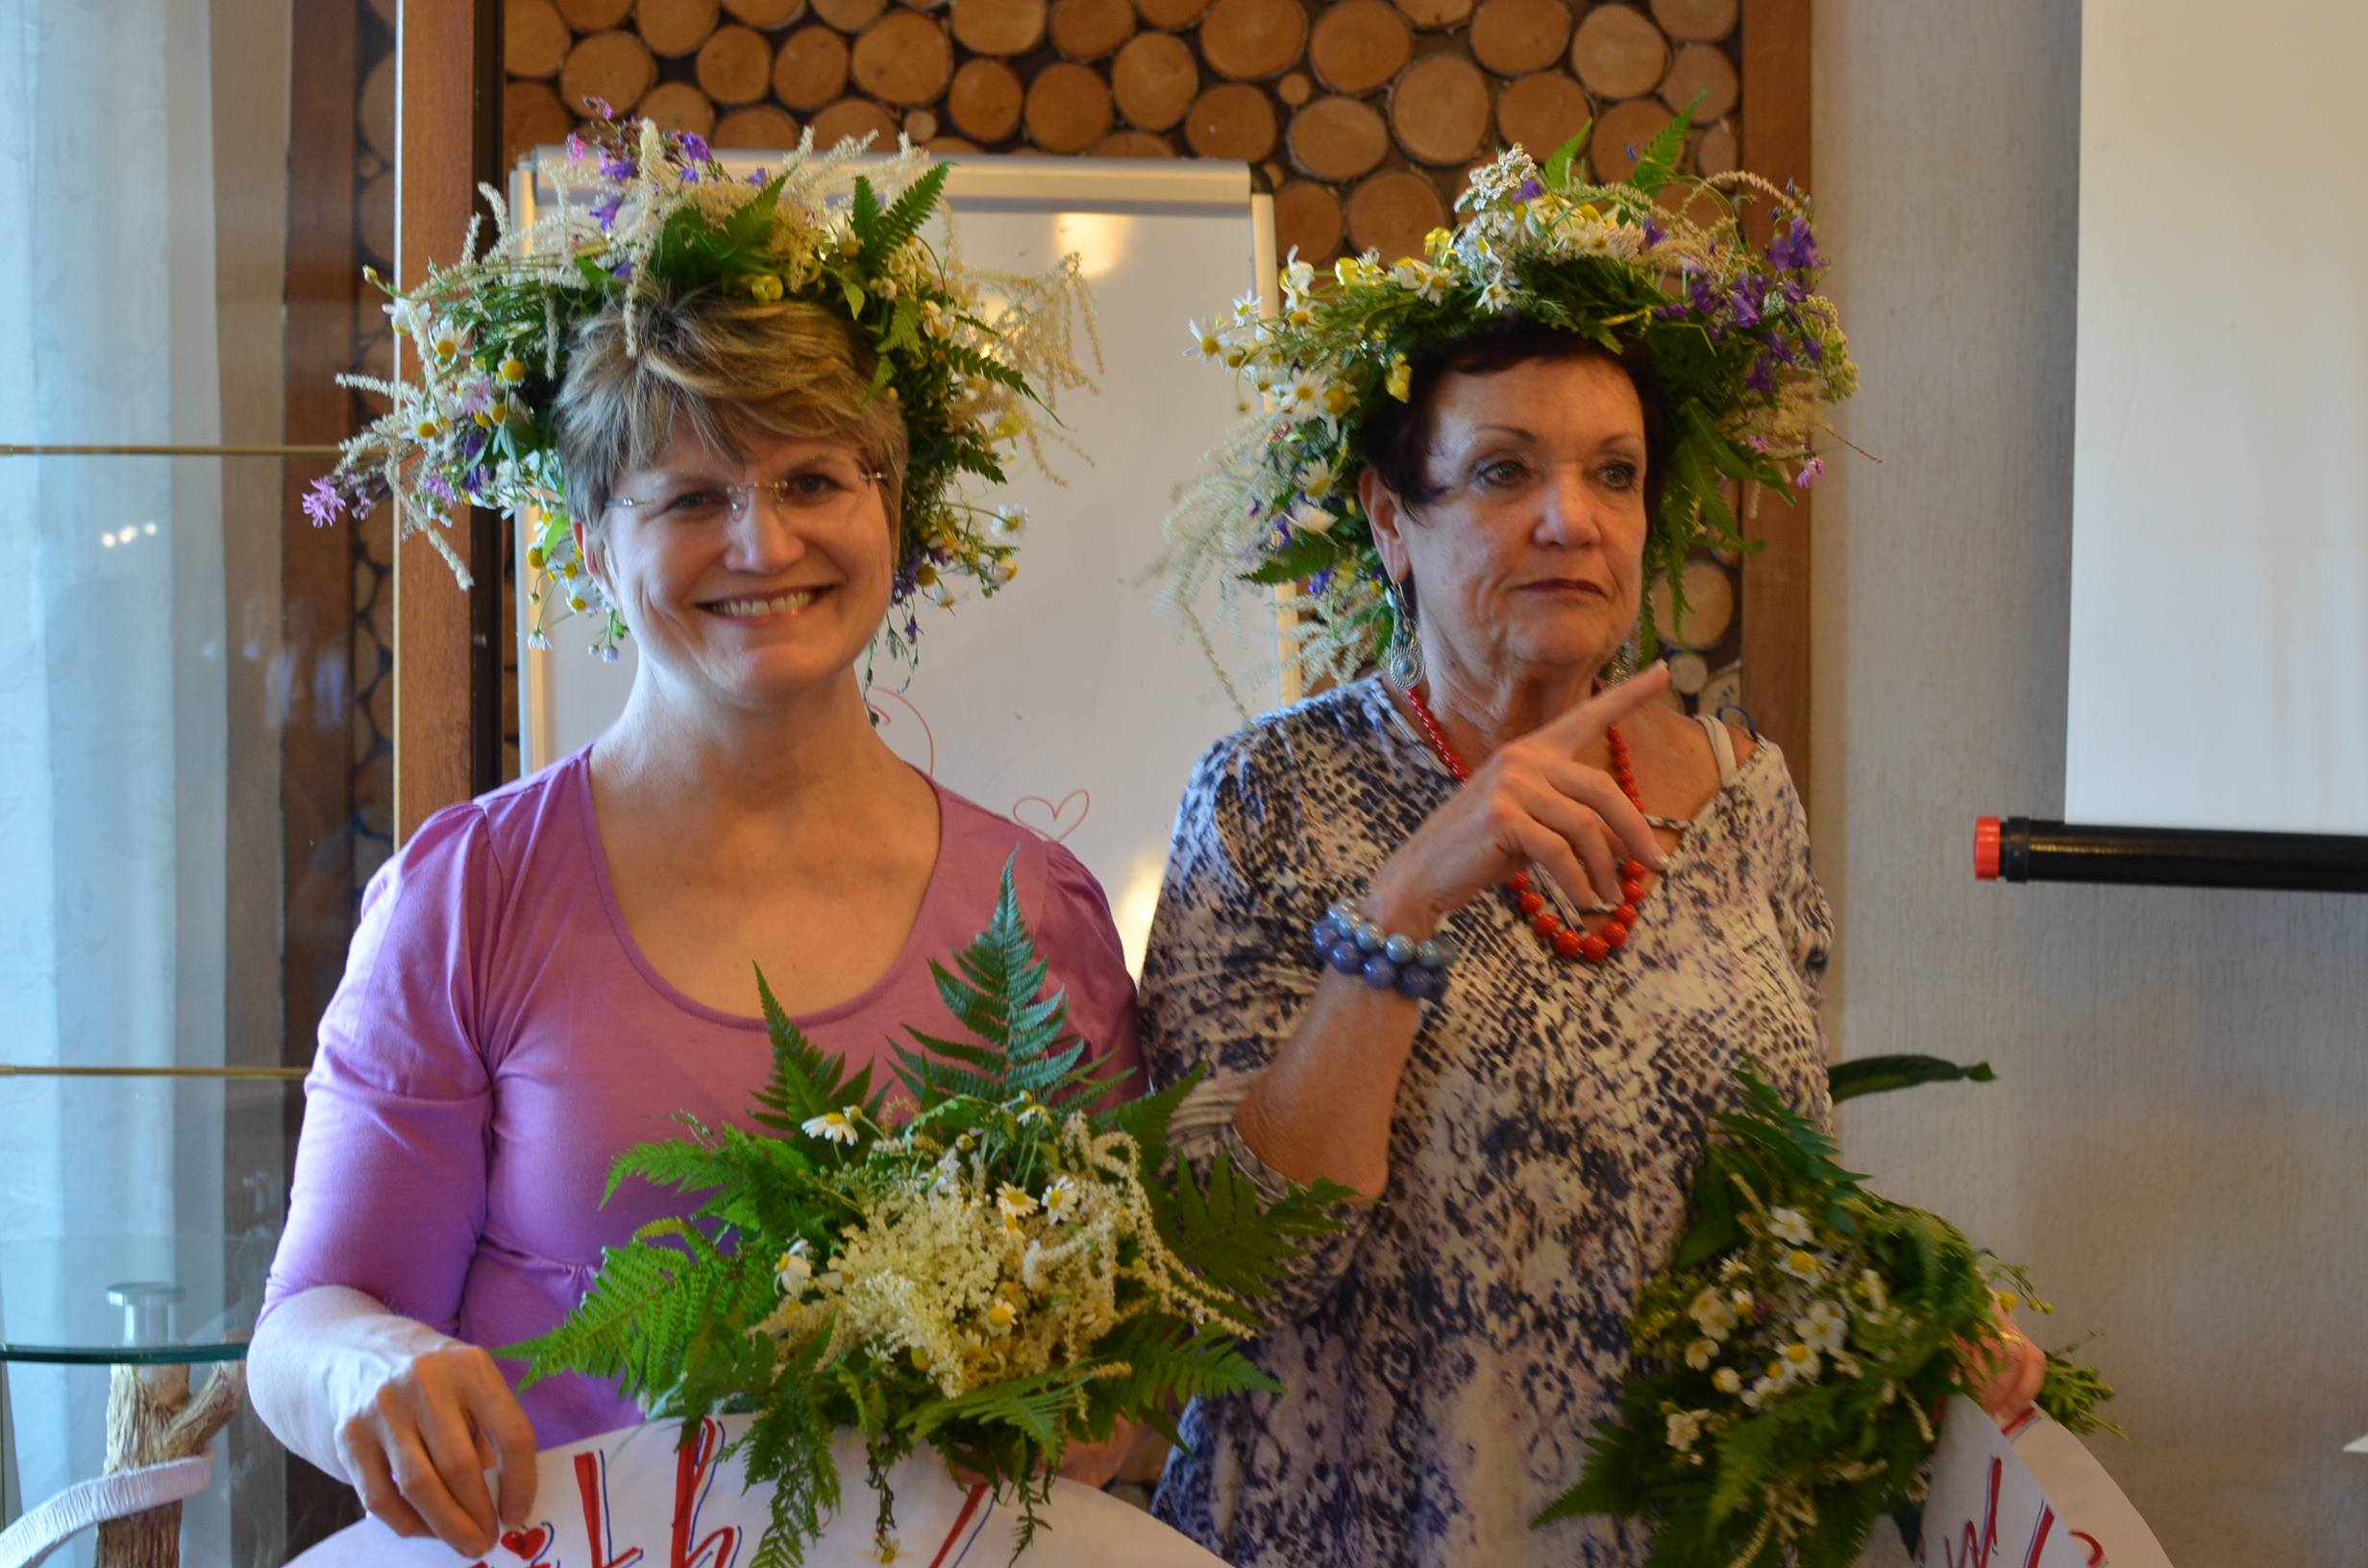 Donna & I were stunned by their incredible acts of kindness and love to us. These wreaths were gorgeous!